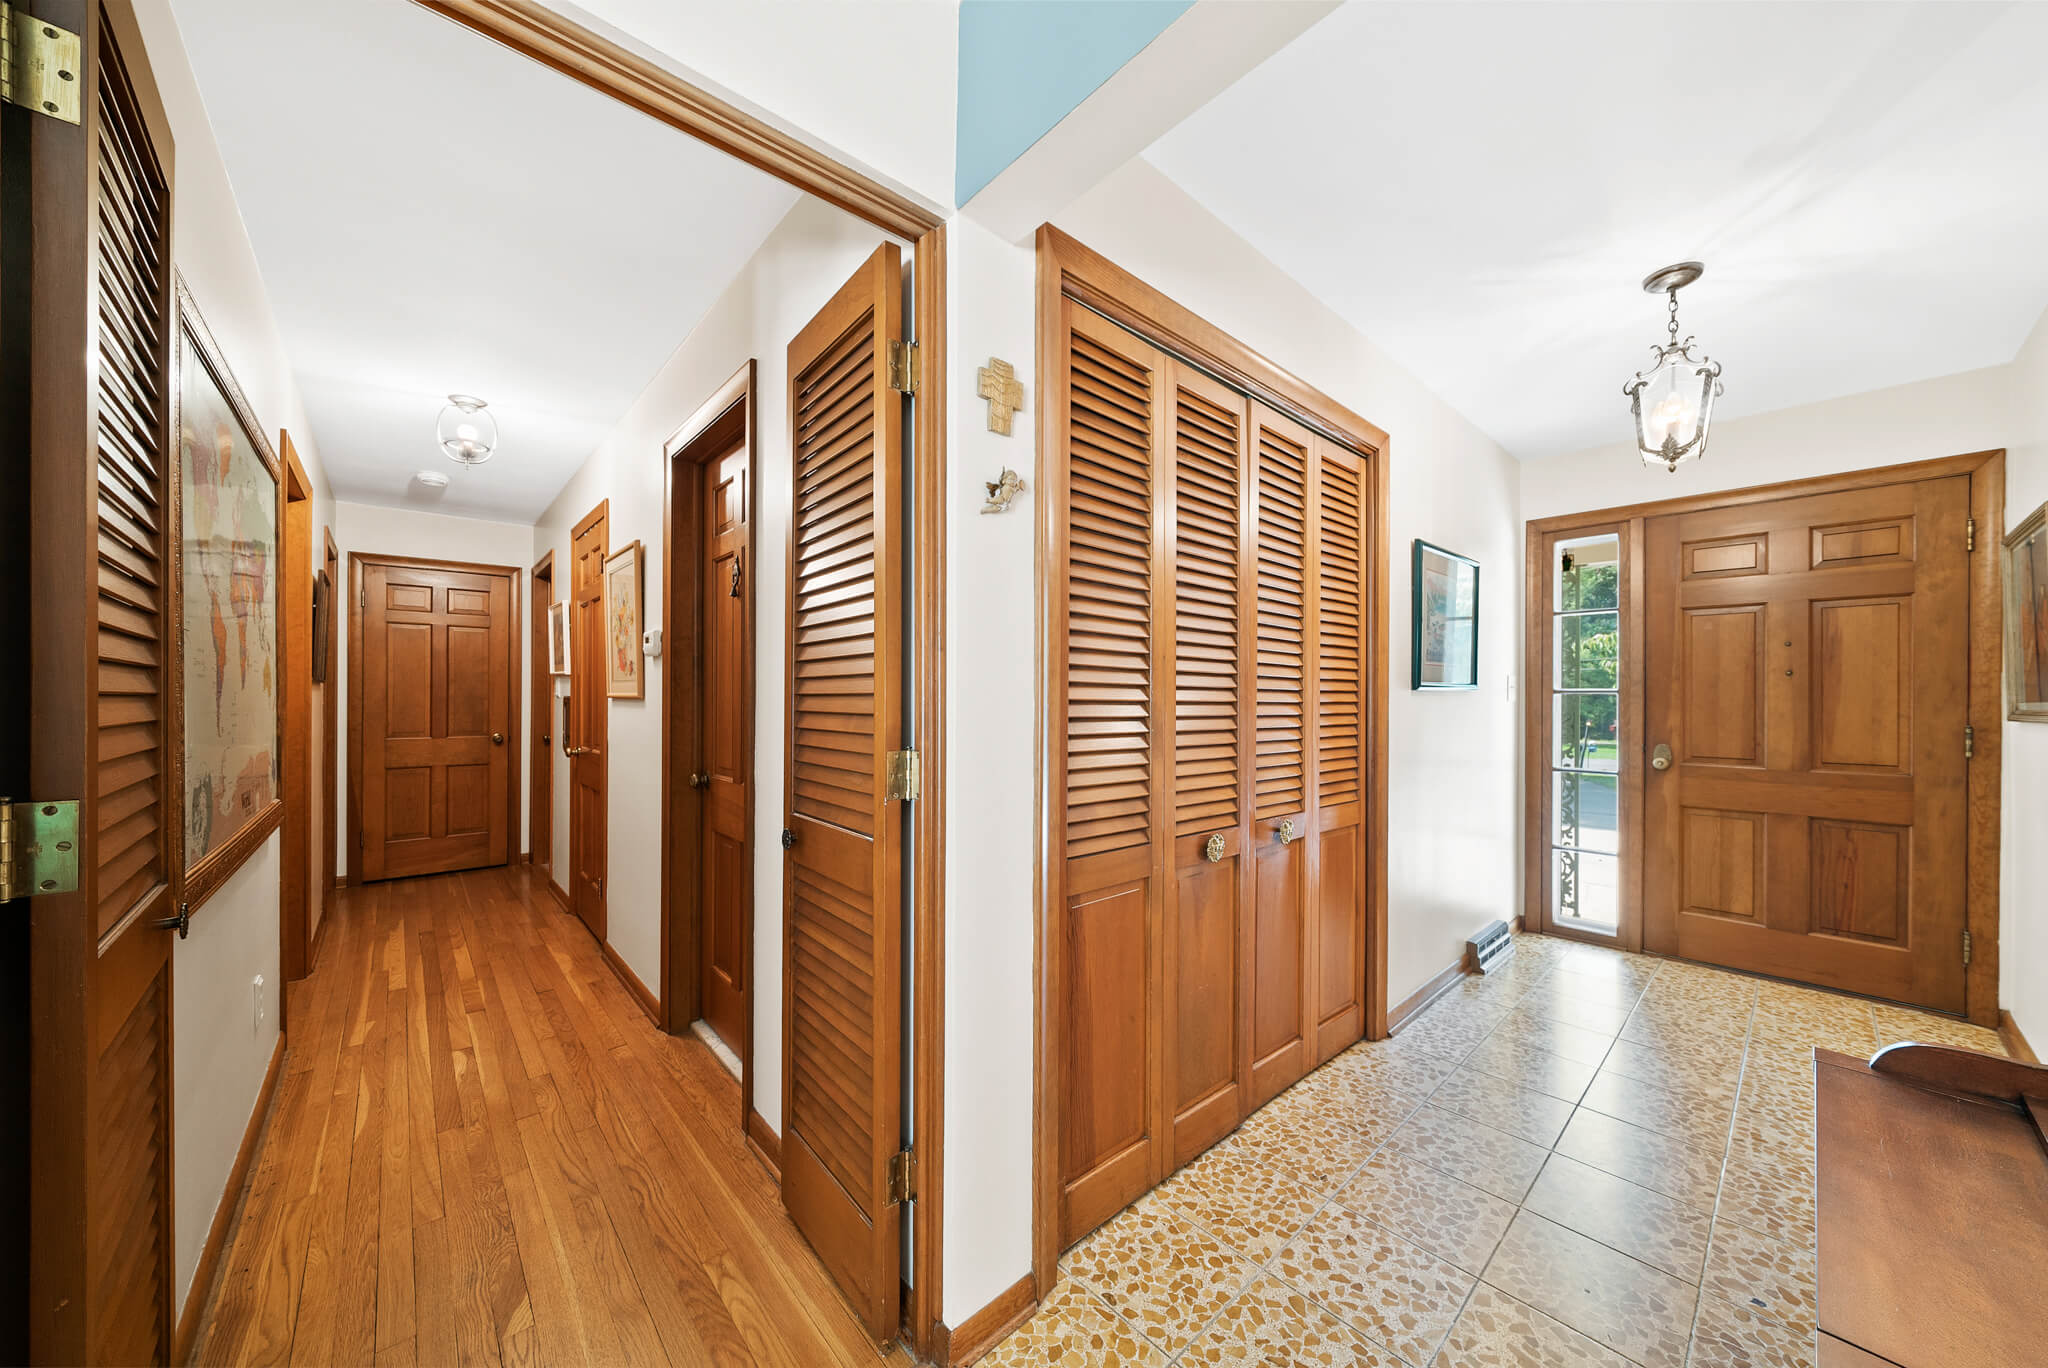 Real hardwood floors at 4349 Orandale Dr in Chagrin Falls